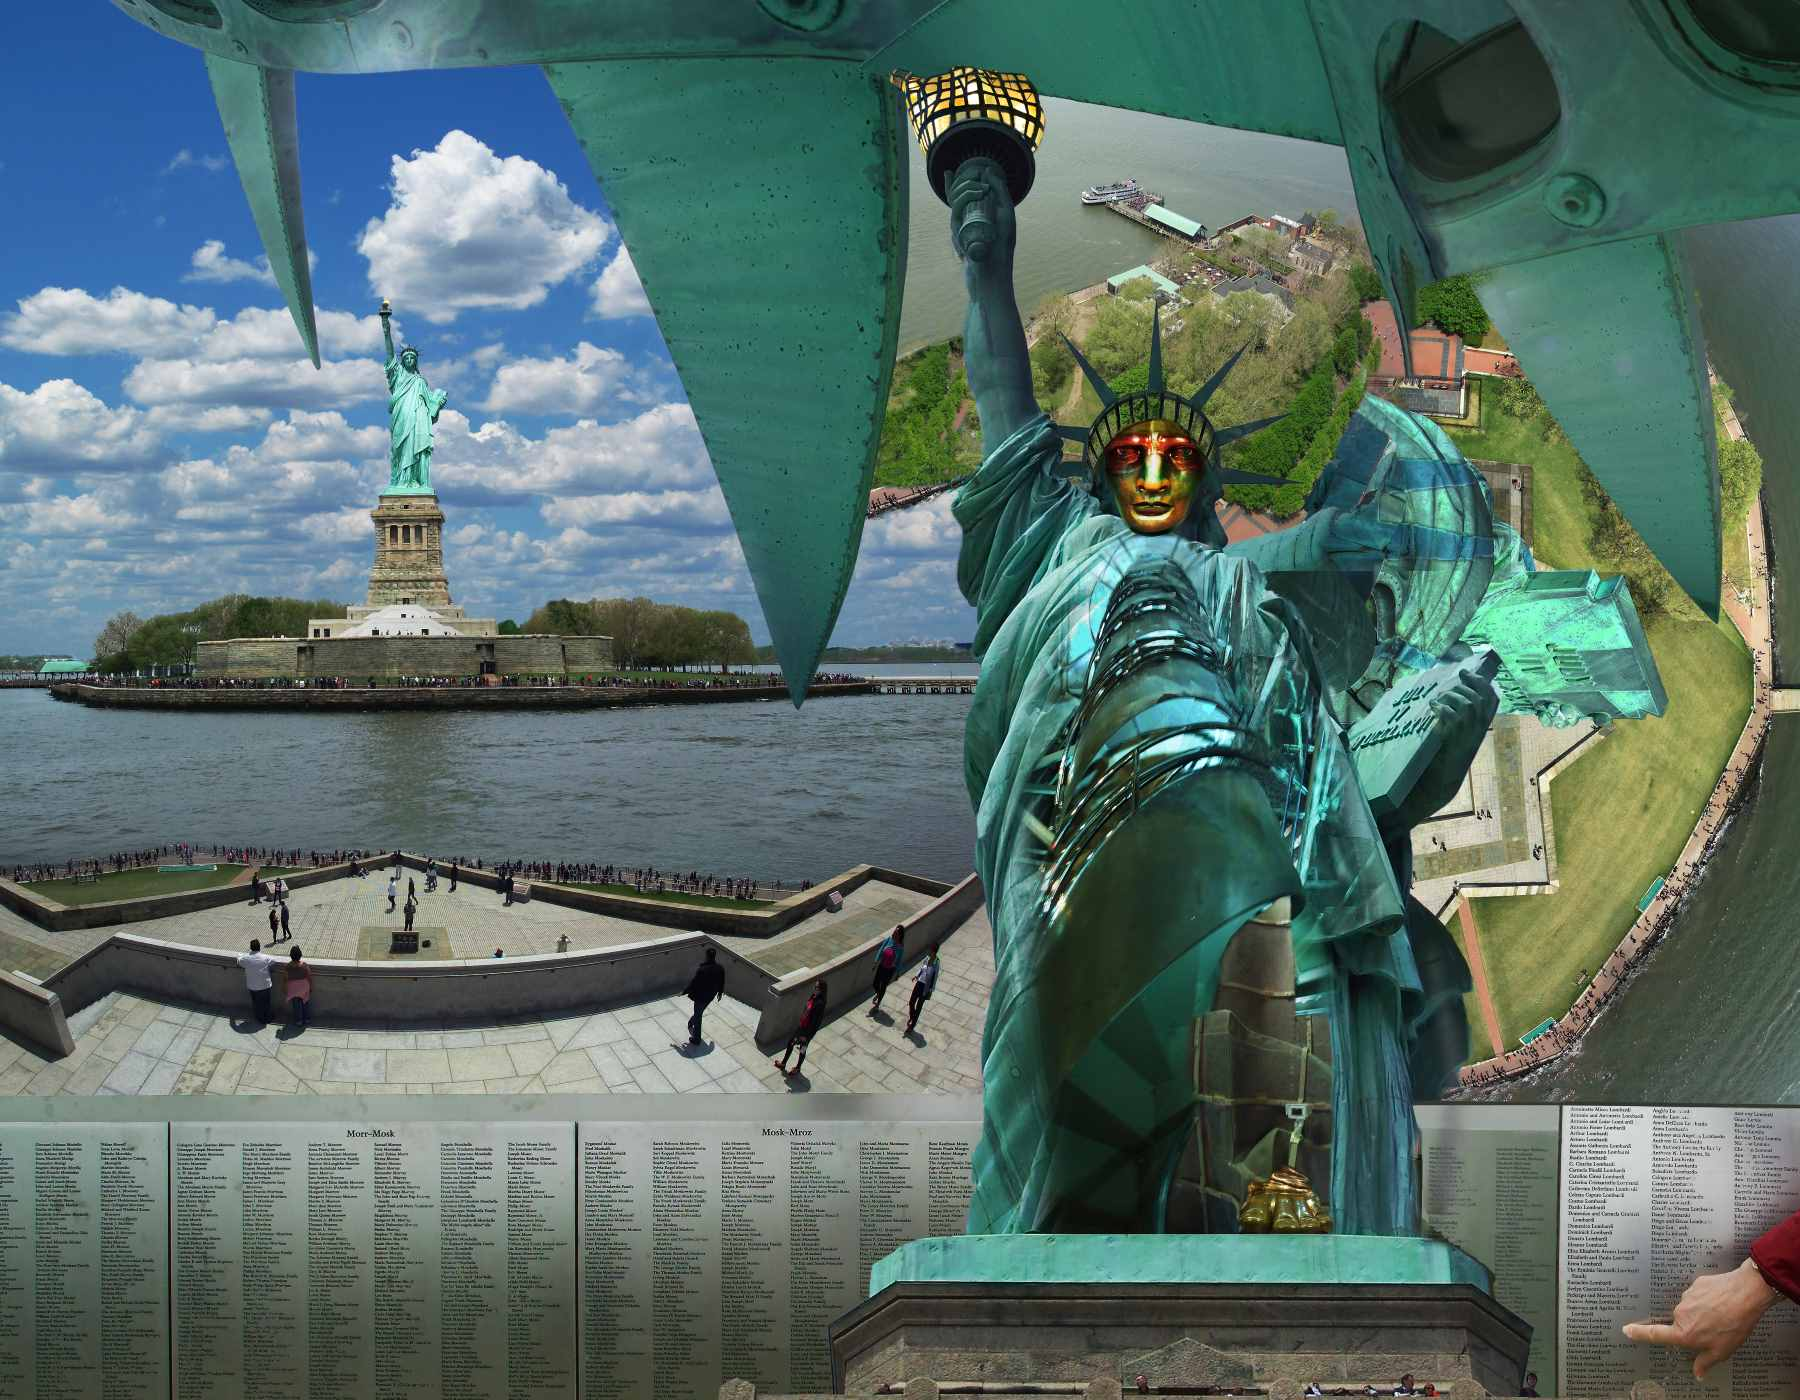 In and Out of the Statue of Liberty